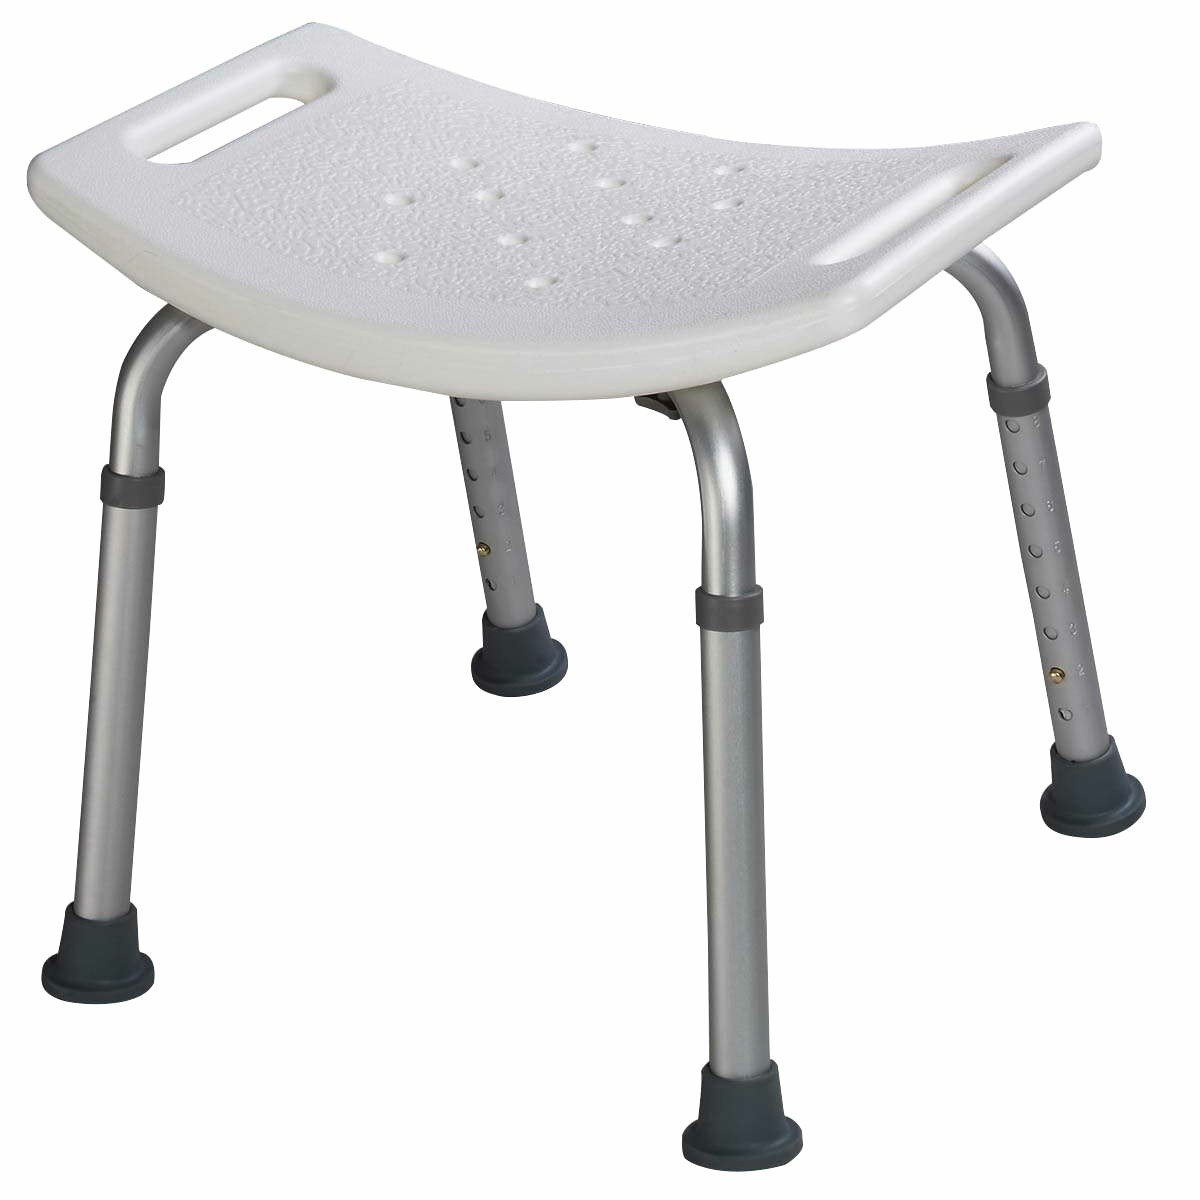 Shower Chair, GentleShower 8 Height Adjustable Medical Bathroom Bath Bench Tub Seat Stool, Tool-Free Assembly